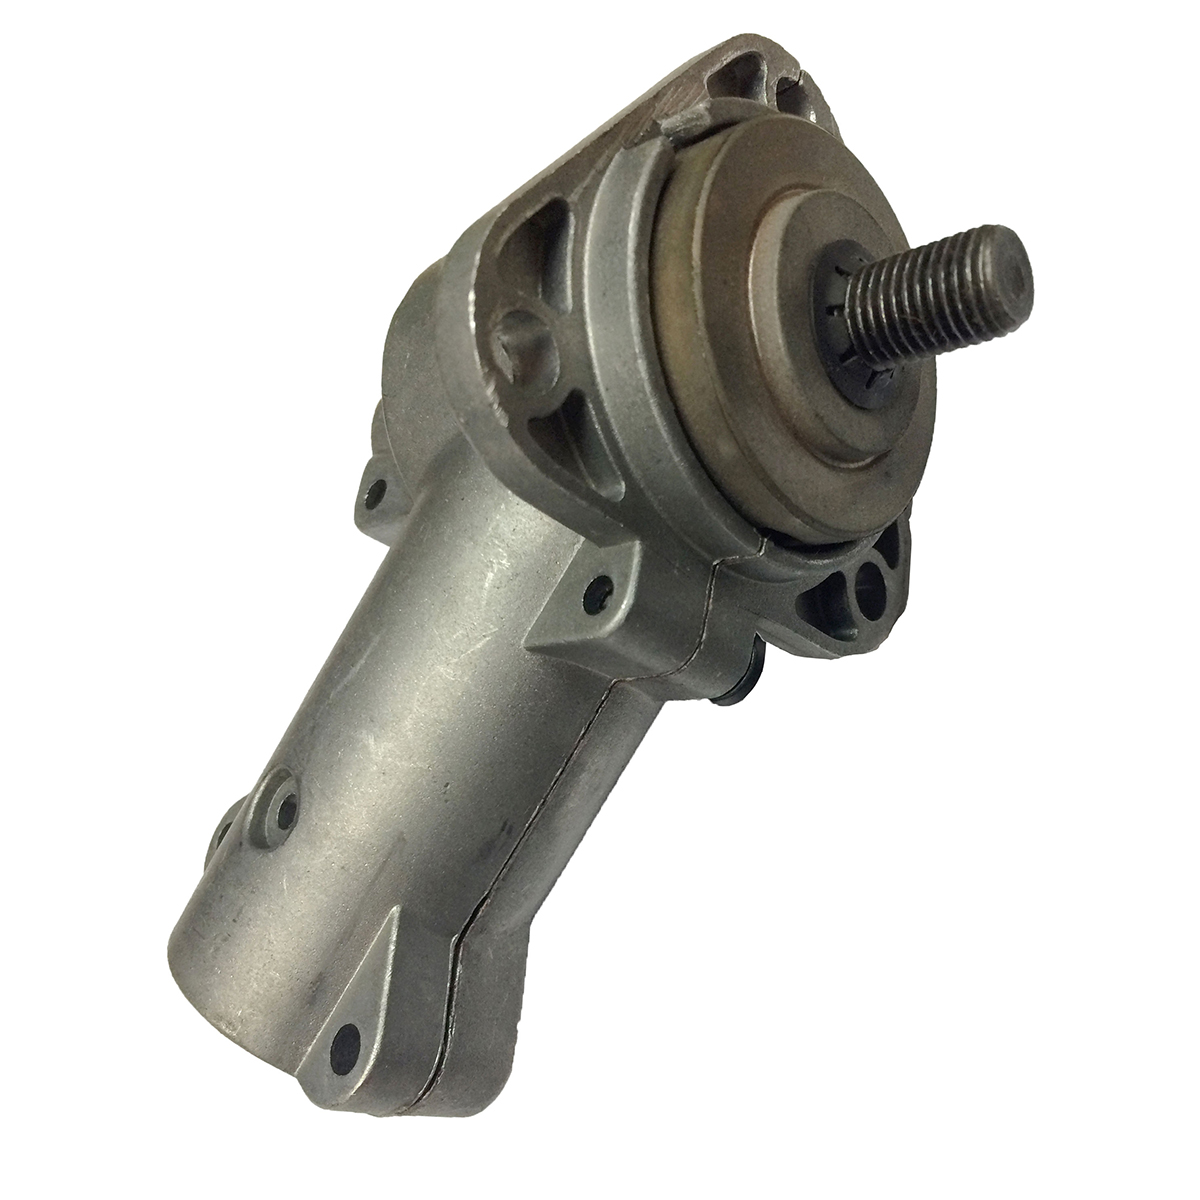 gearbox assembly 791-182193